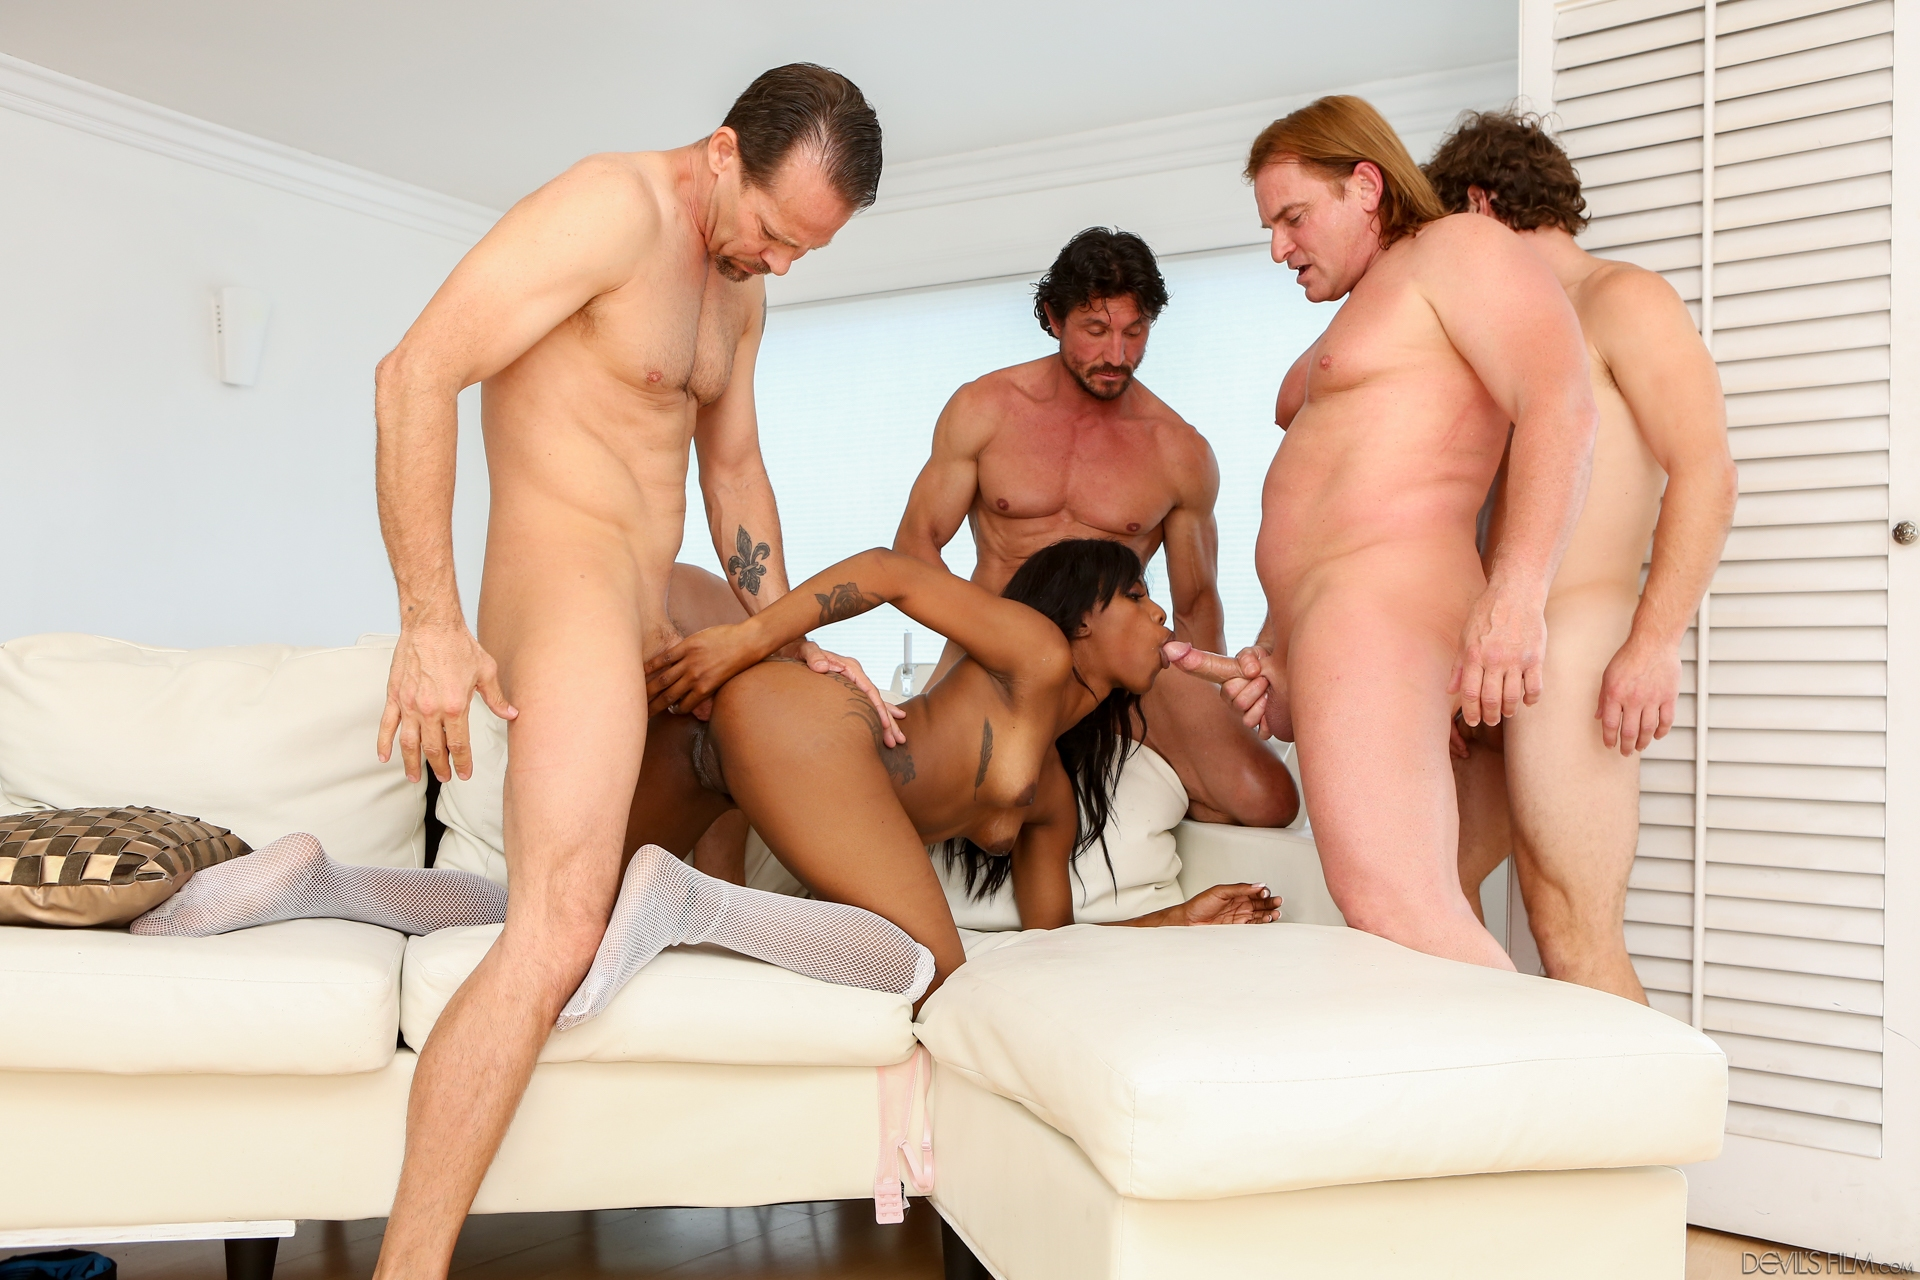 Black Girl White Guy  Most Sexy Porn  Free Hd  4K Photos-1939